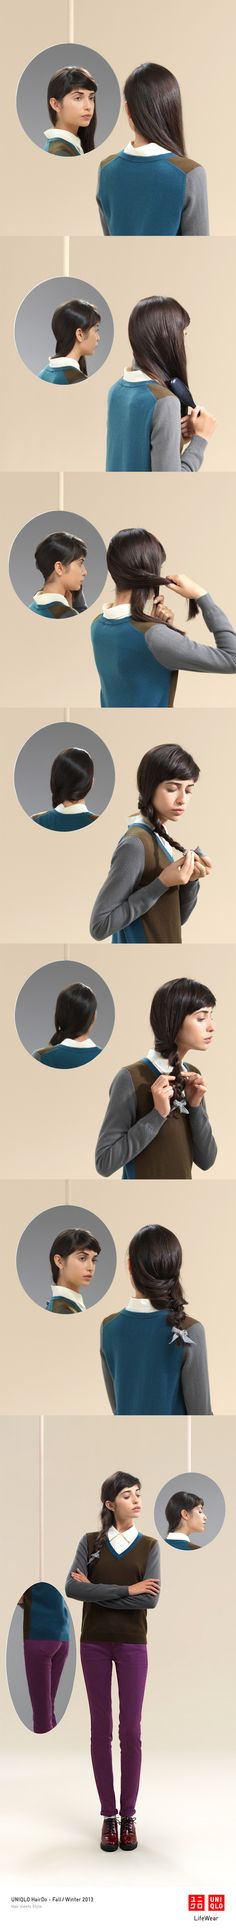 """THE TWIST BRAID"" : Our ultra stretch pants, sweater and this textured braid make a great office look. Click the image for DIY instructions! #Braids #DIY #Hair #Hairstyle #Uniqlo #FW2013 #HairDo"